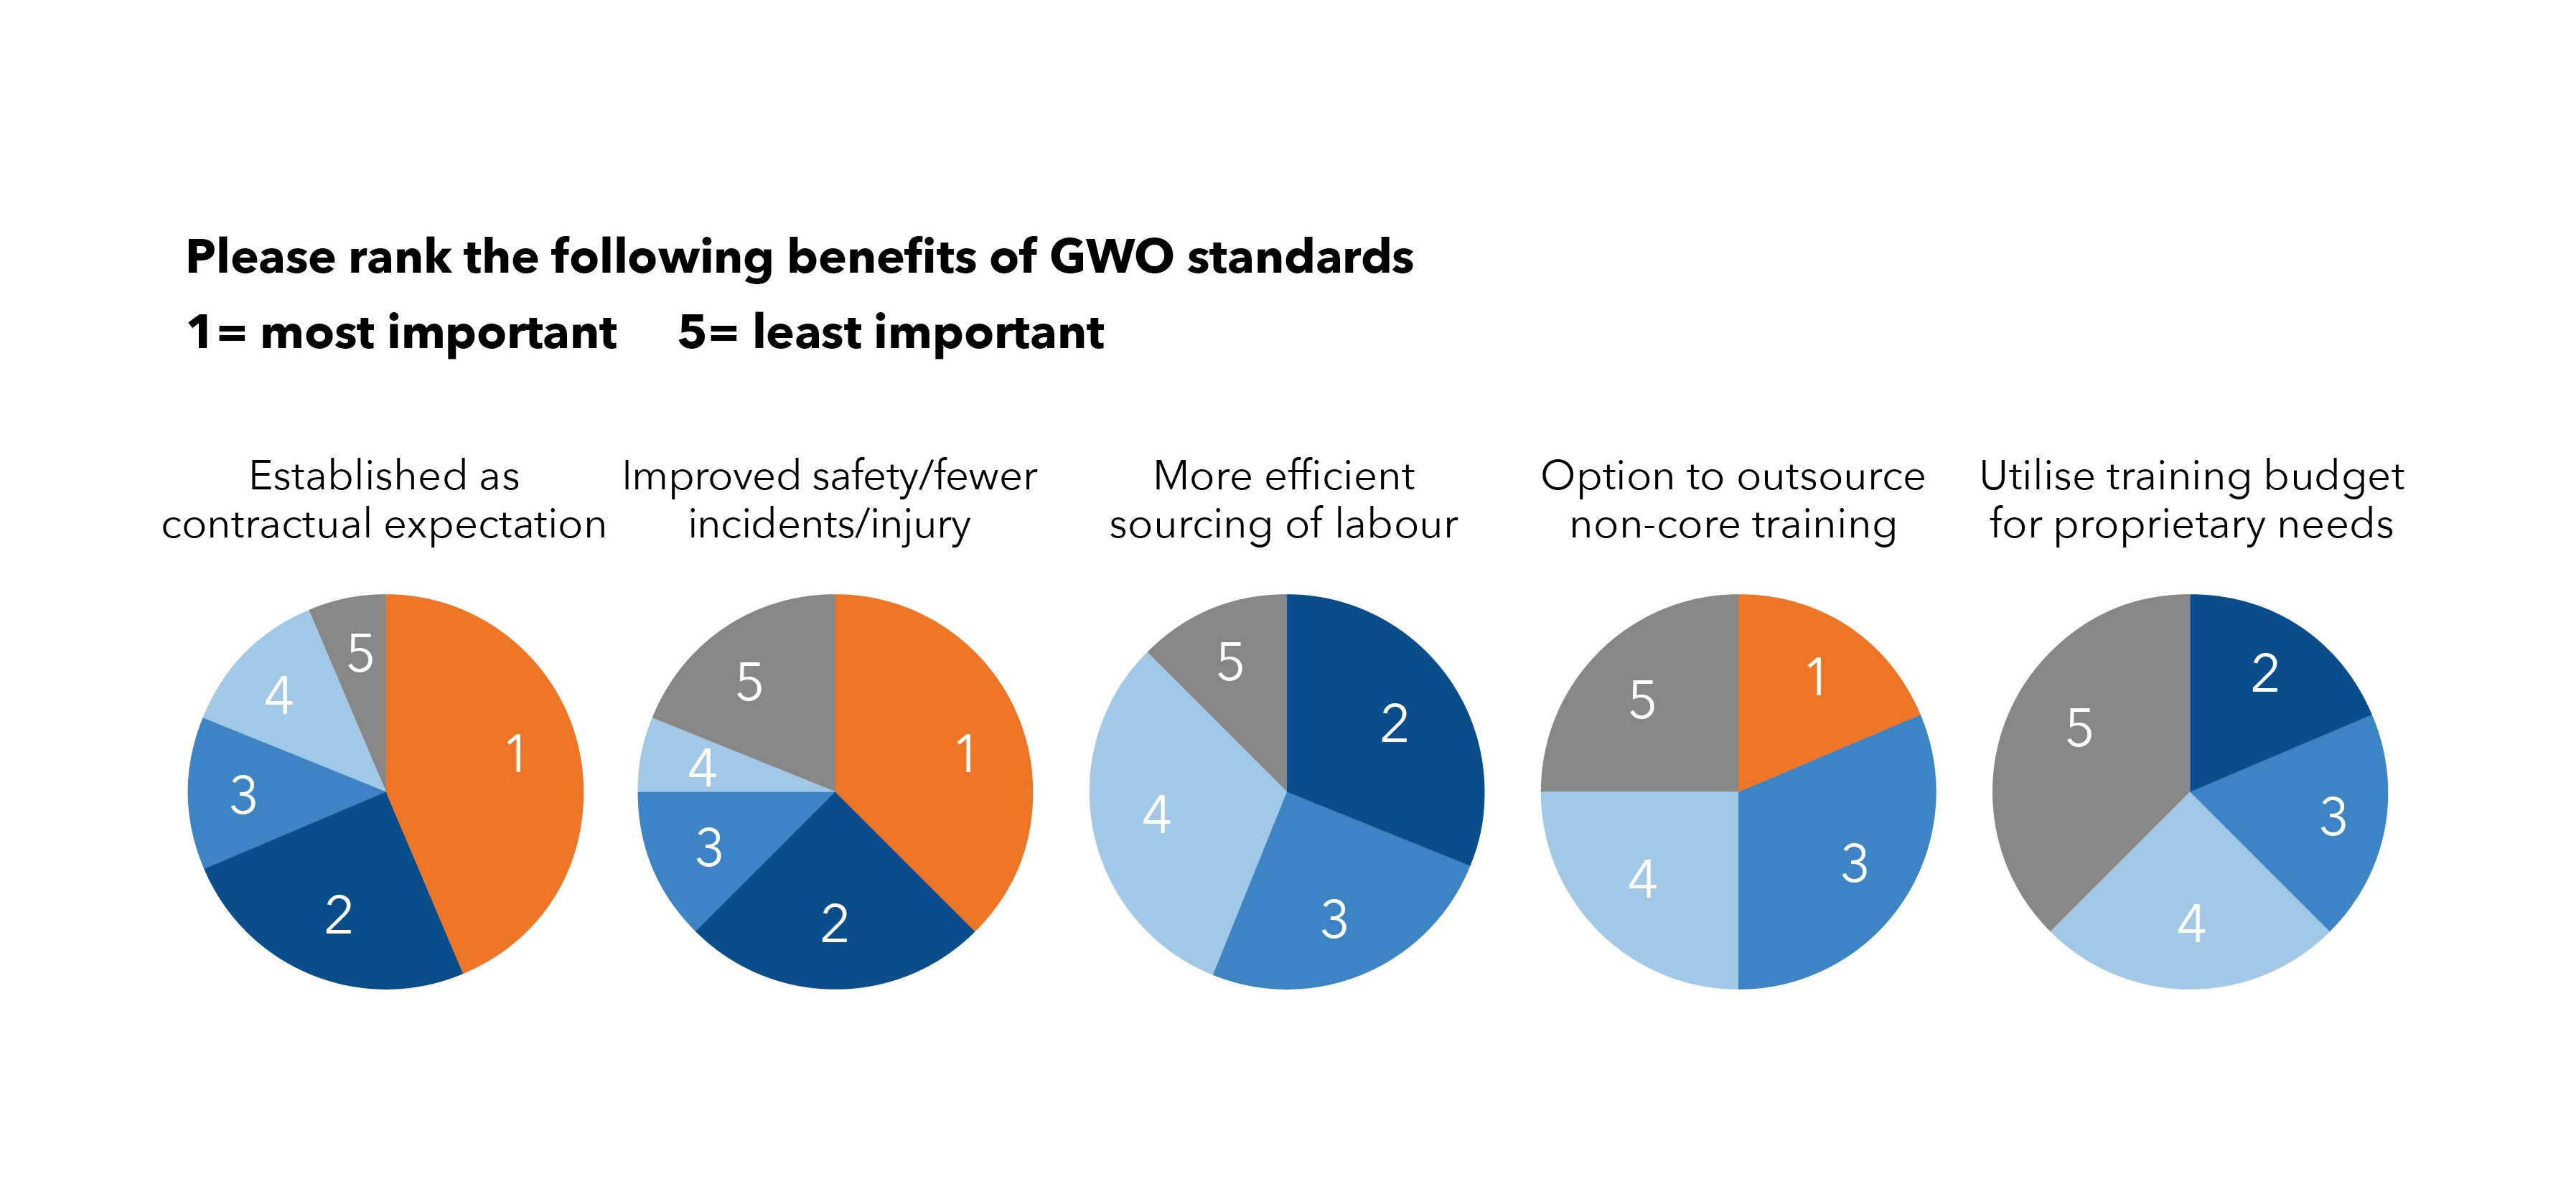 GWO Training is a contractual expectation for wind energy projects